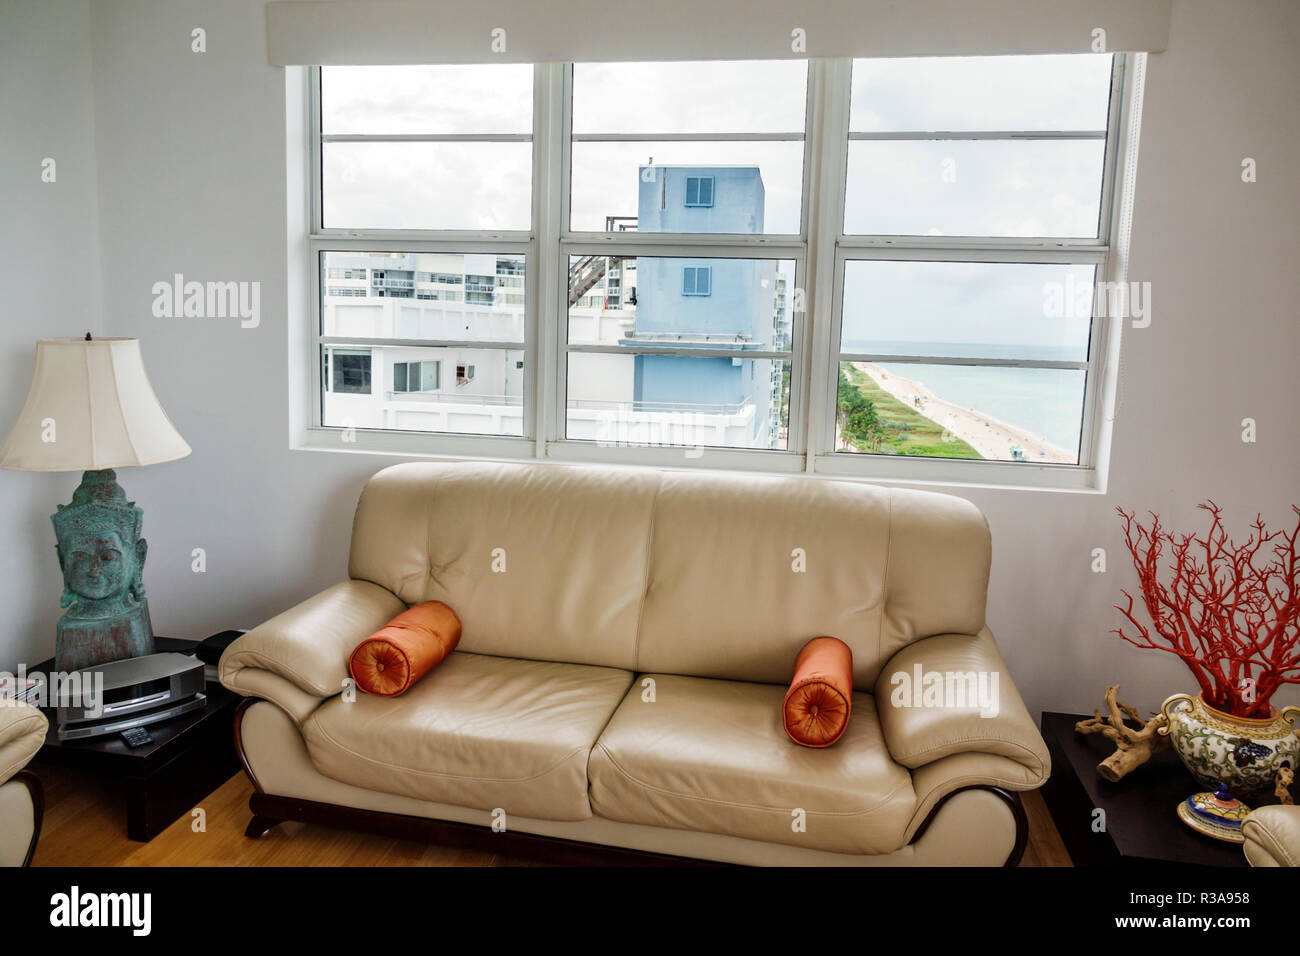 florida living room furniture vintage style miami beach north collins condominium condo unattractive window view sofa